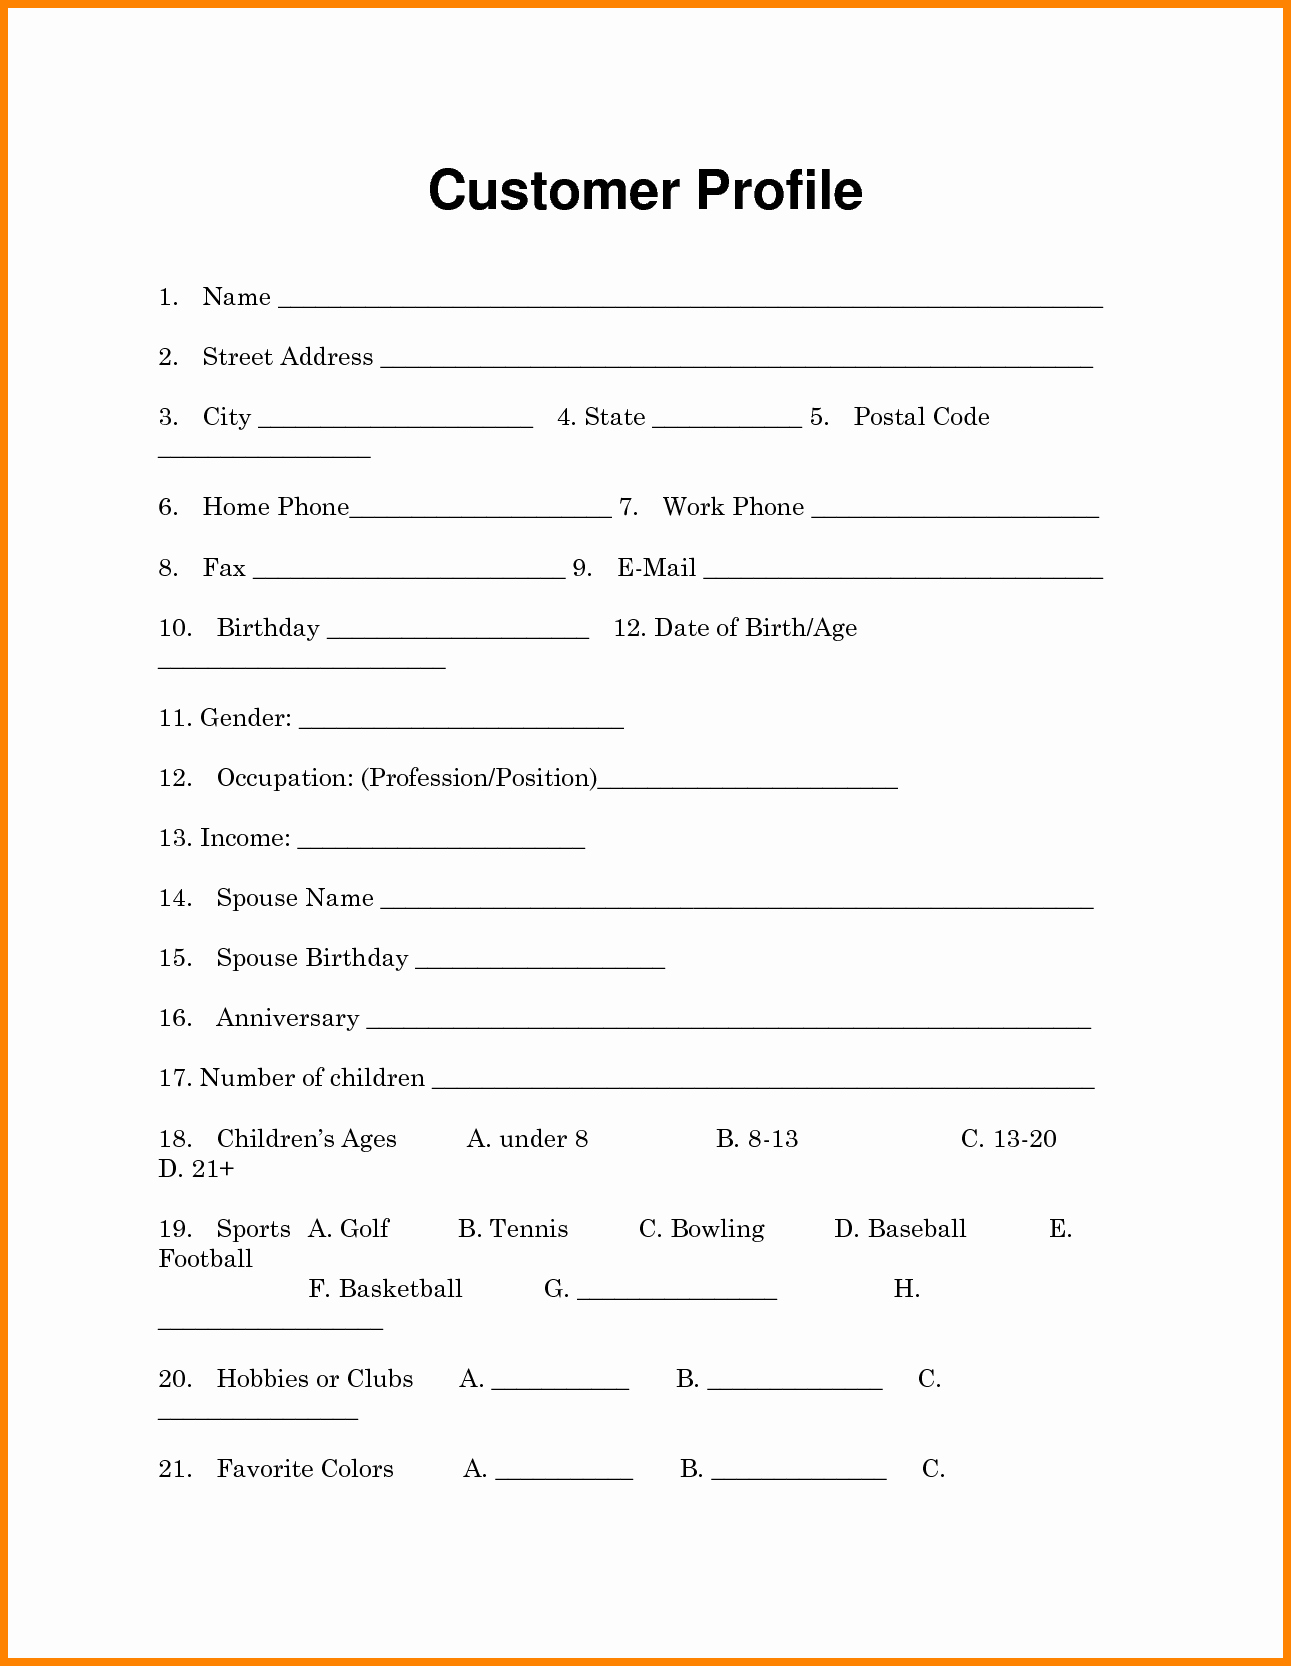 New Customer form Template Word Portablegasgrillweber